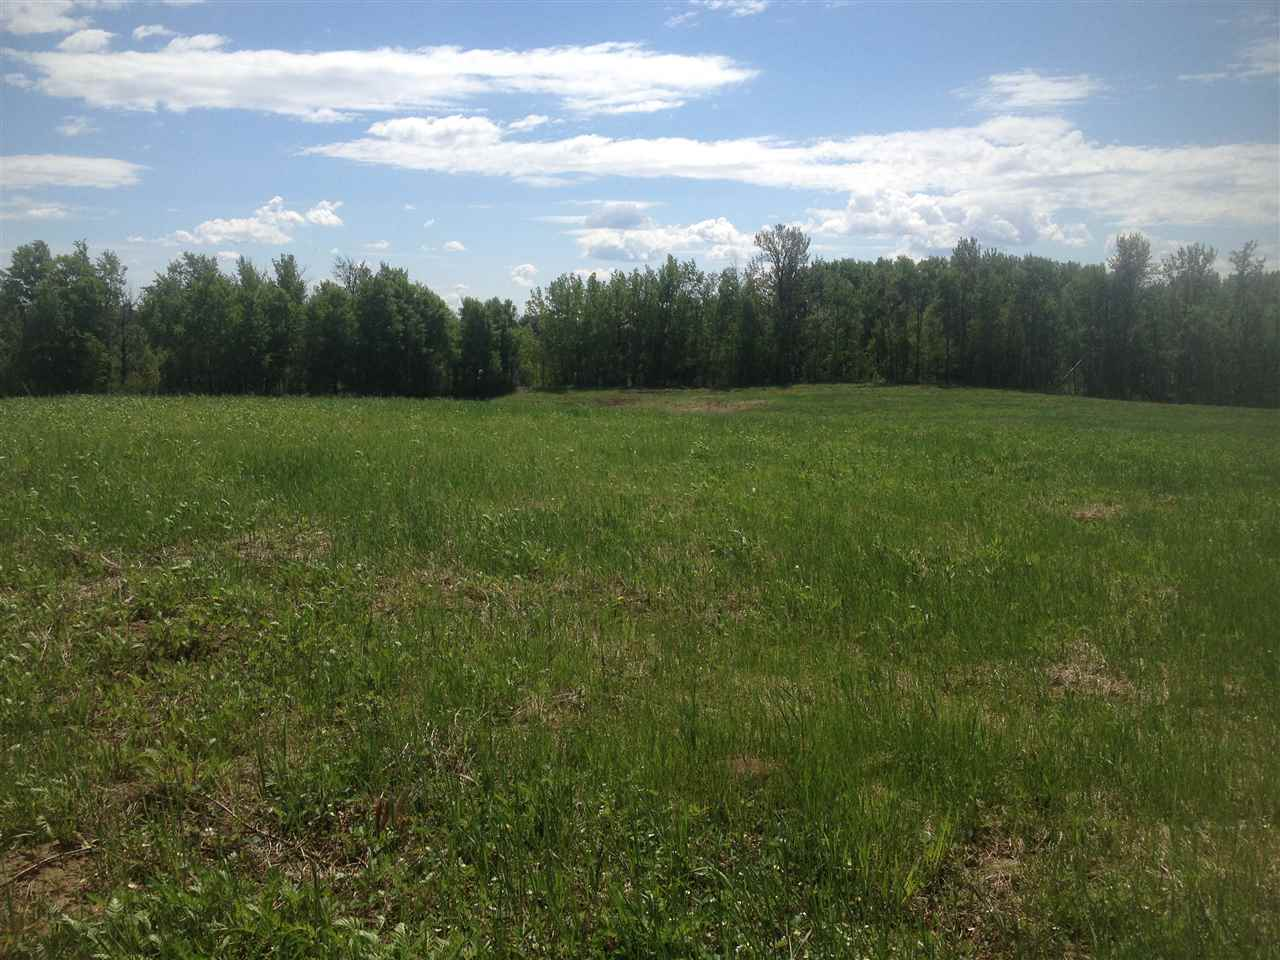 Photo 9: 52502 Range Road 22A: Rural Parkland County Rural Land/Vacant Lot for sale : MLS(r) # E4069524